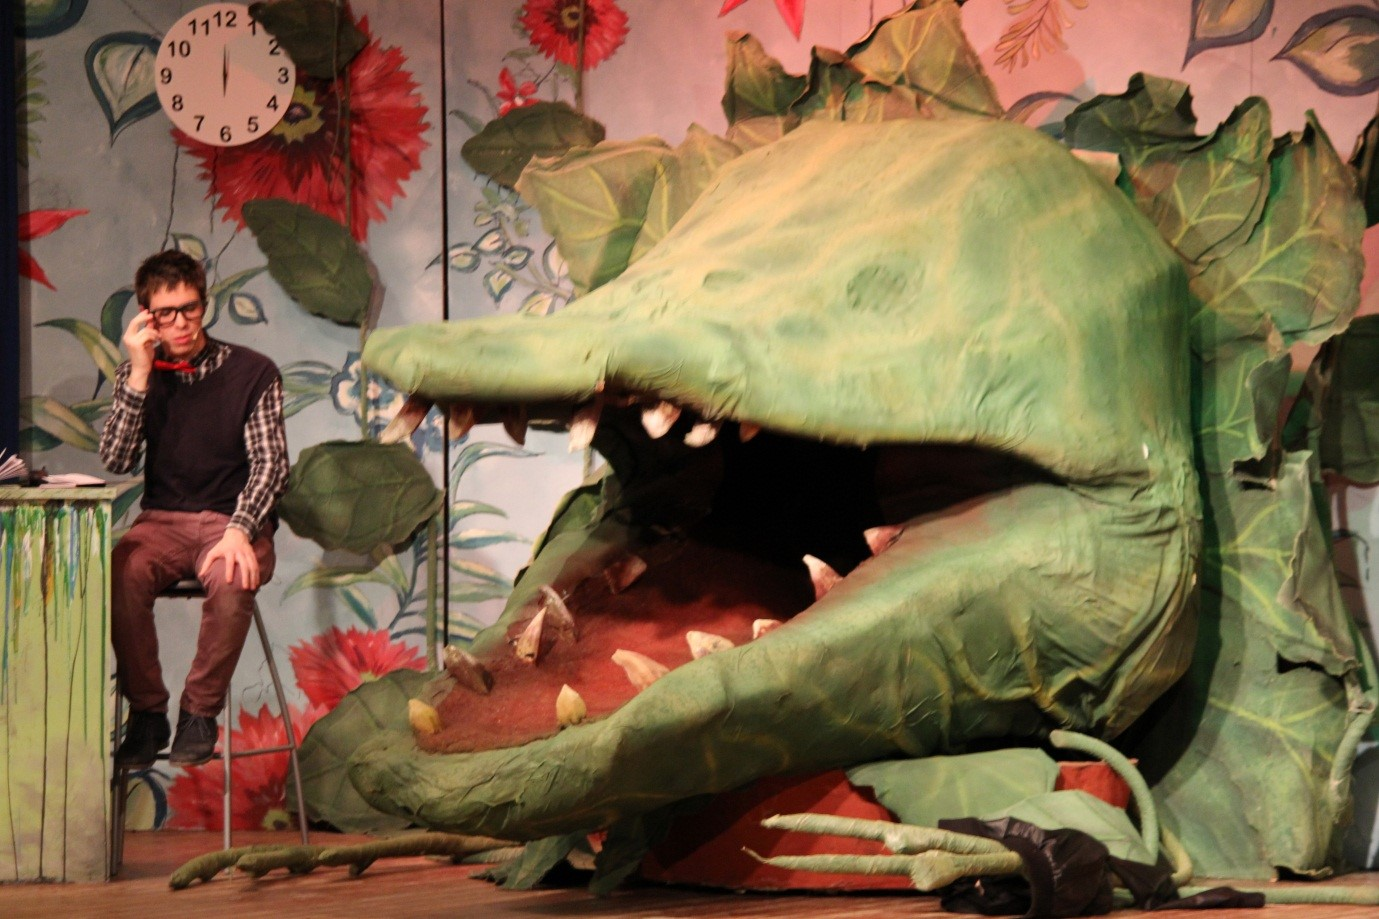 Photo 3 - The Little Shop of Horrors